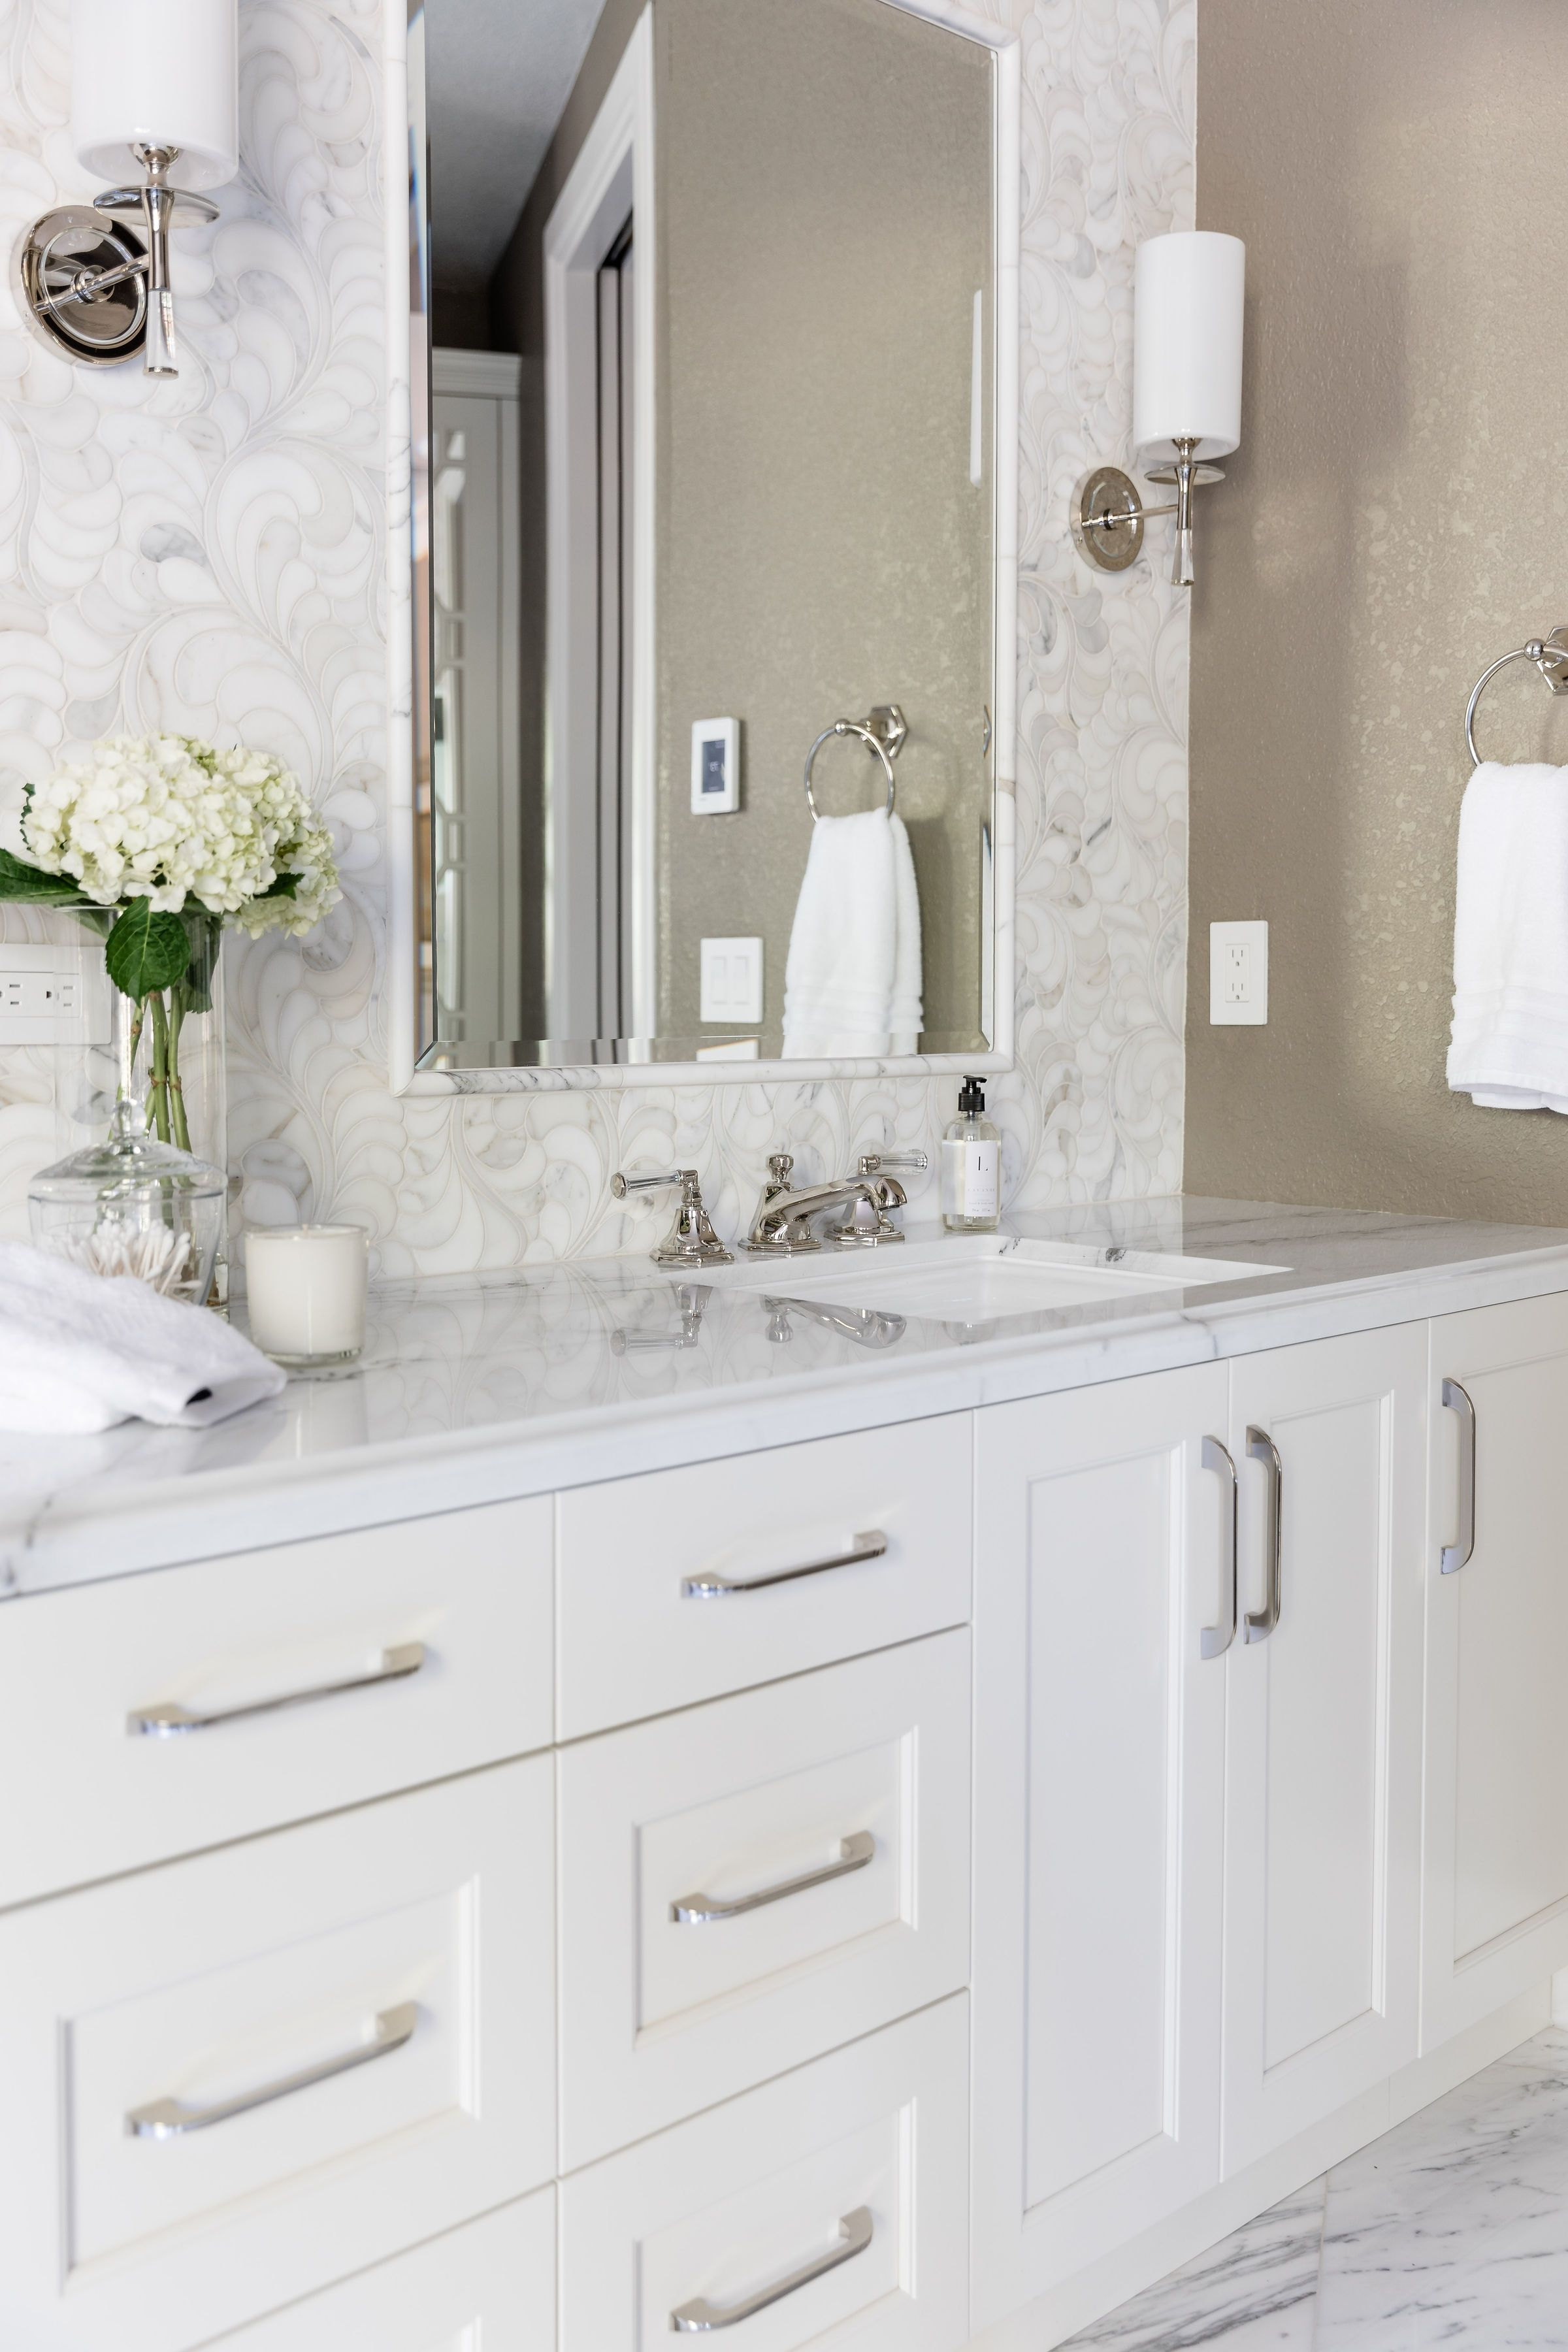 Marble Wall Marble Counters And Painted White Cabinets